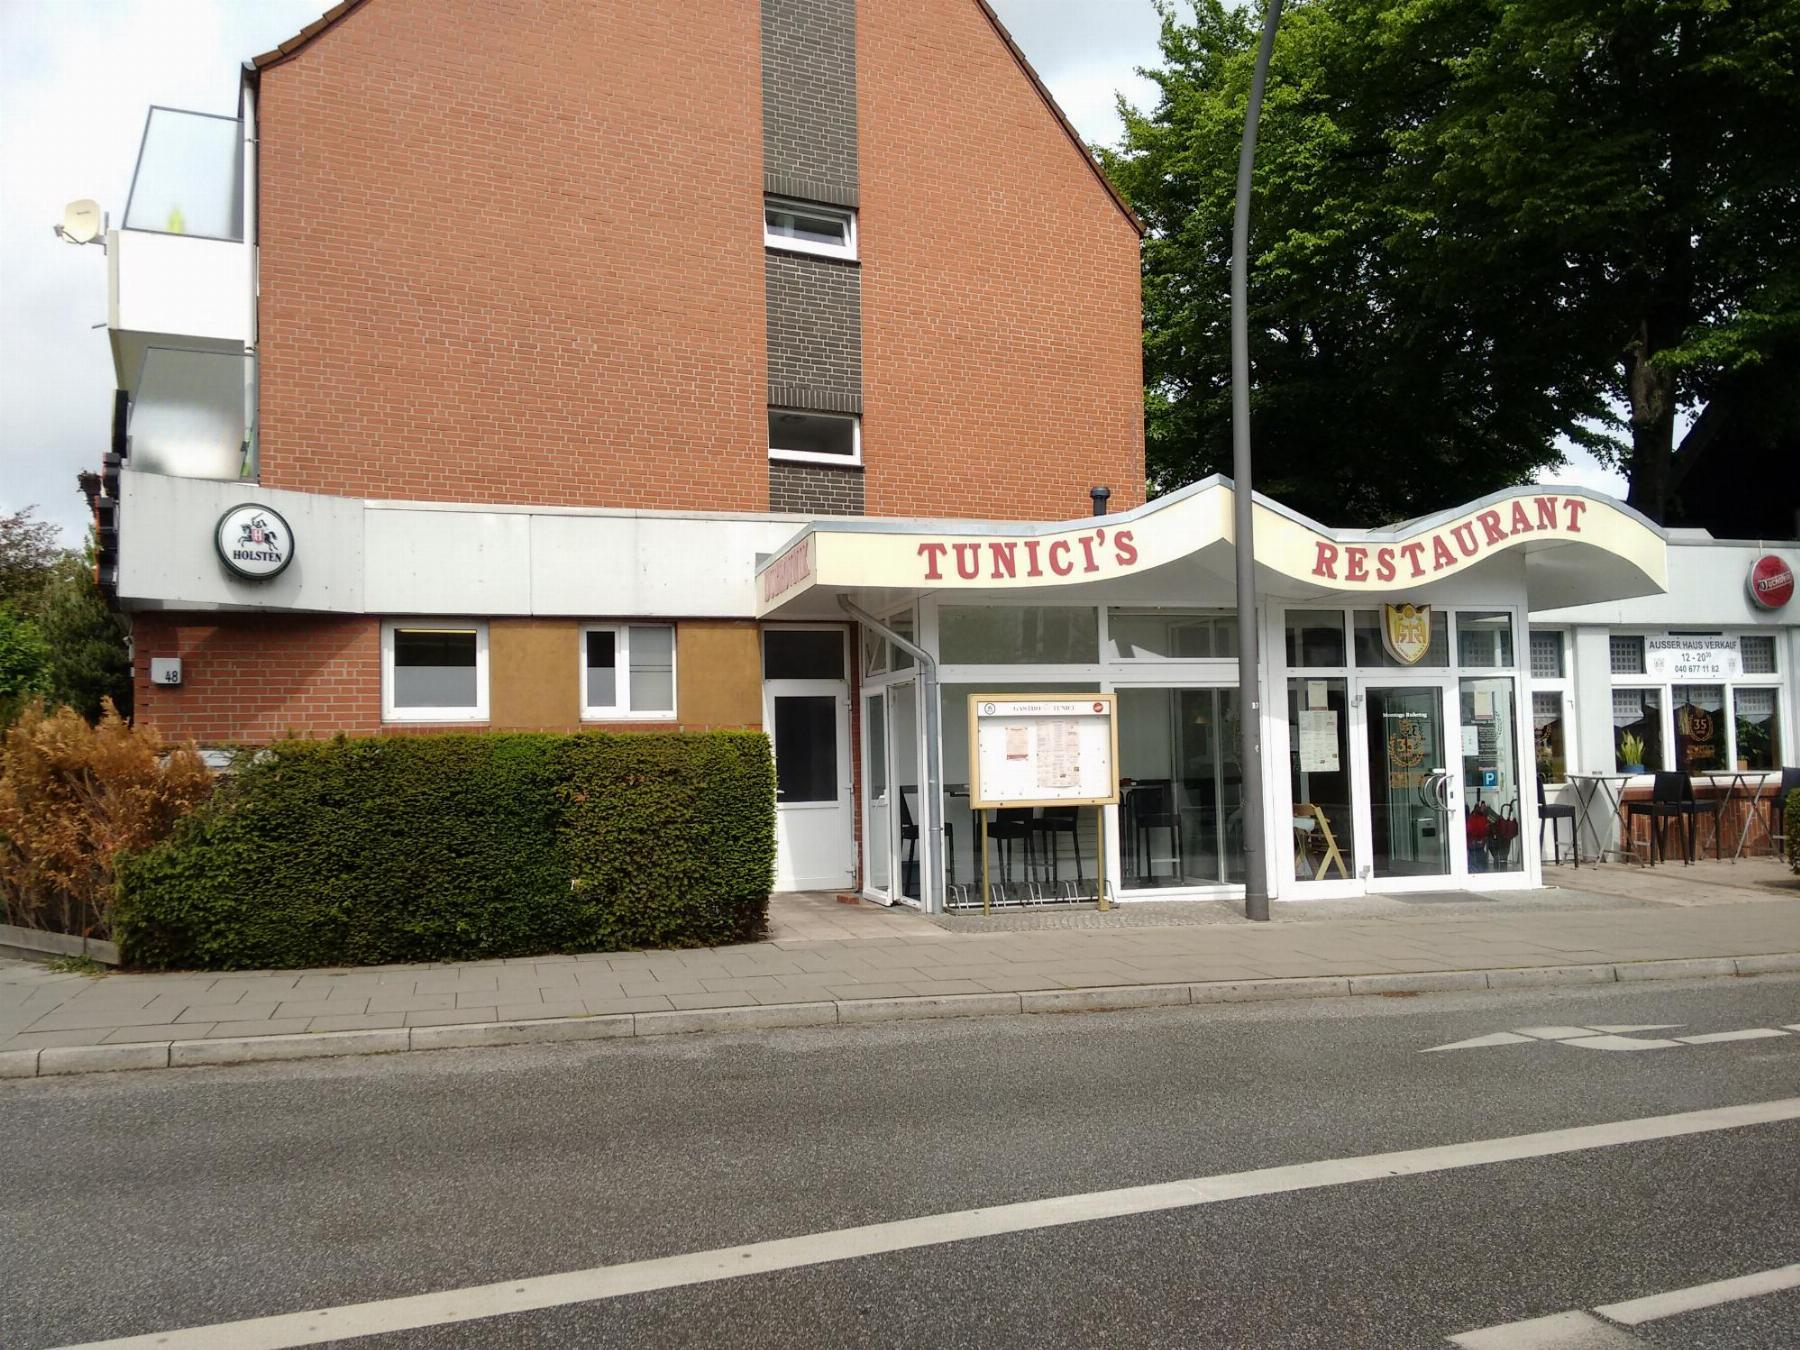 Tunici's Restaurant in Rahlstedt